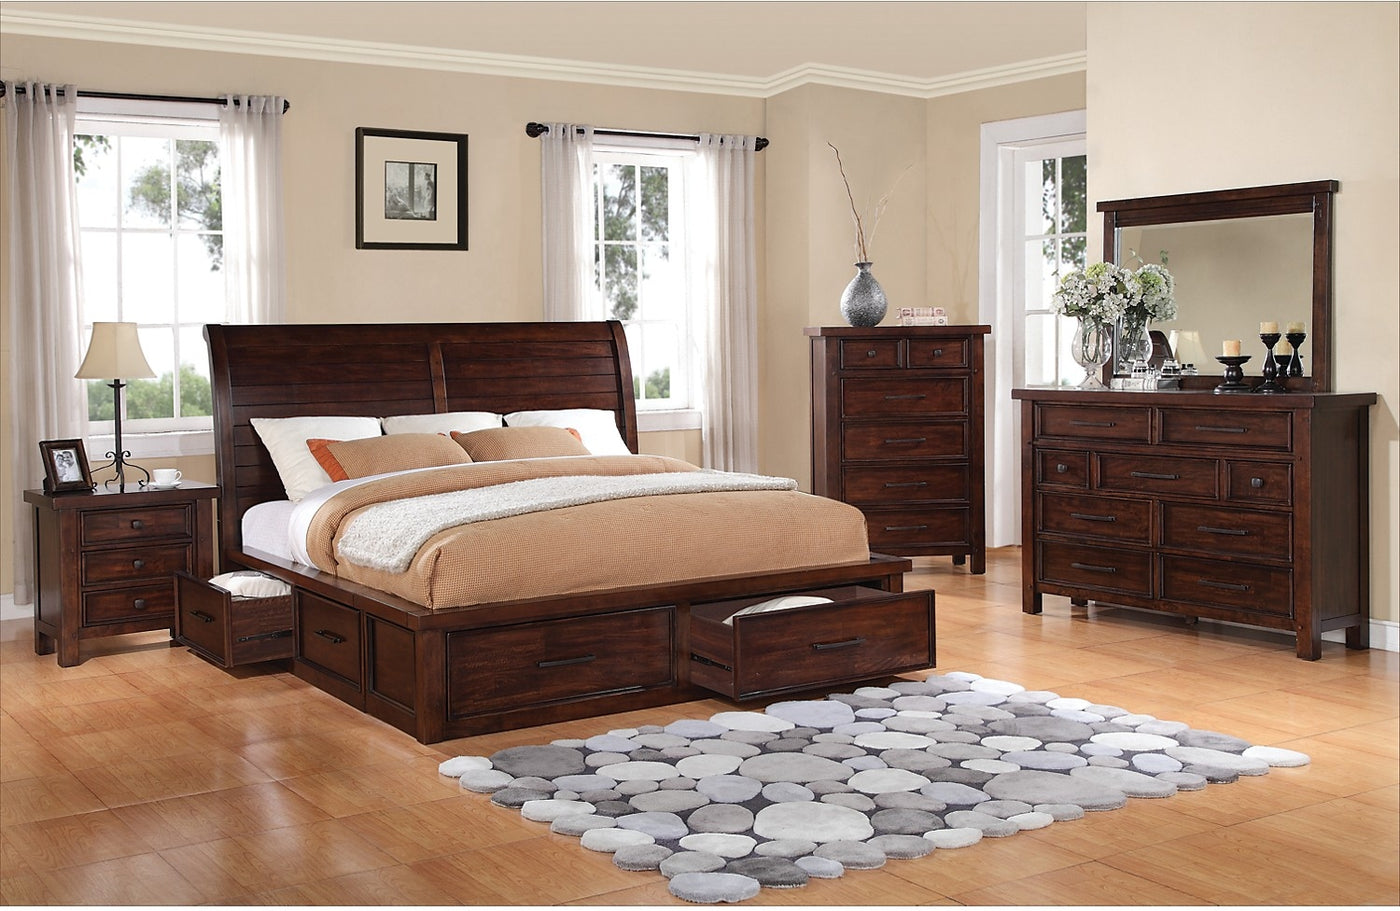 Sensational Sonoma 8 Piece King Storage Bedroom Set Dark Brown Home Interior And Landscaping Spoatsignezvosmurscom